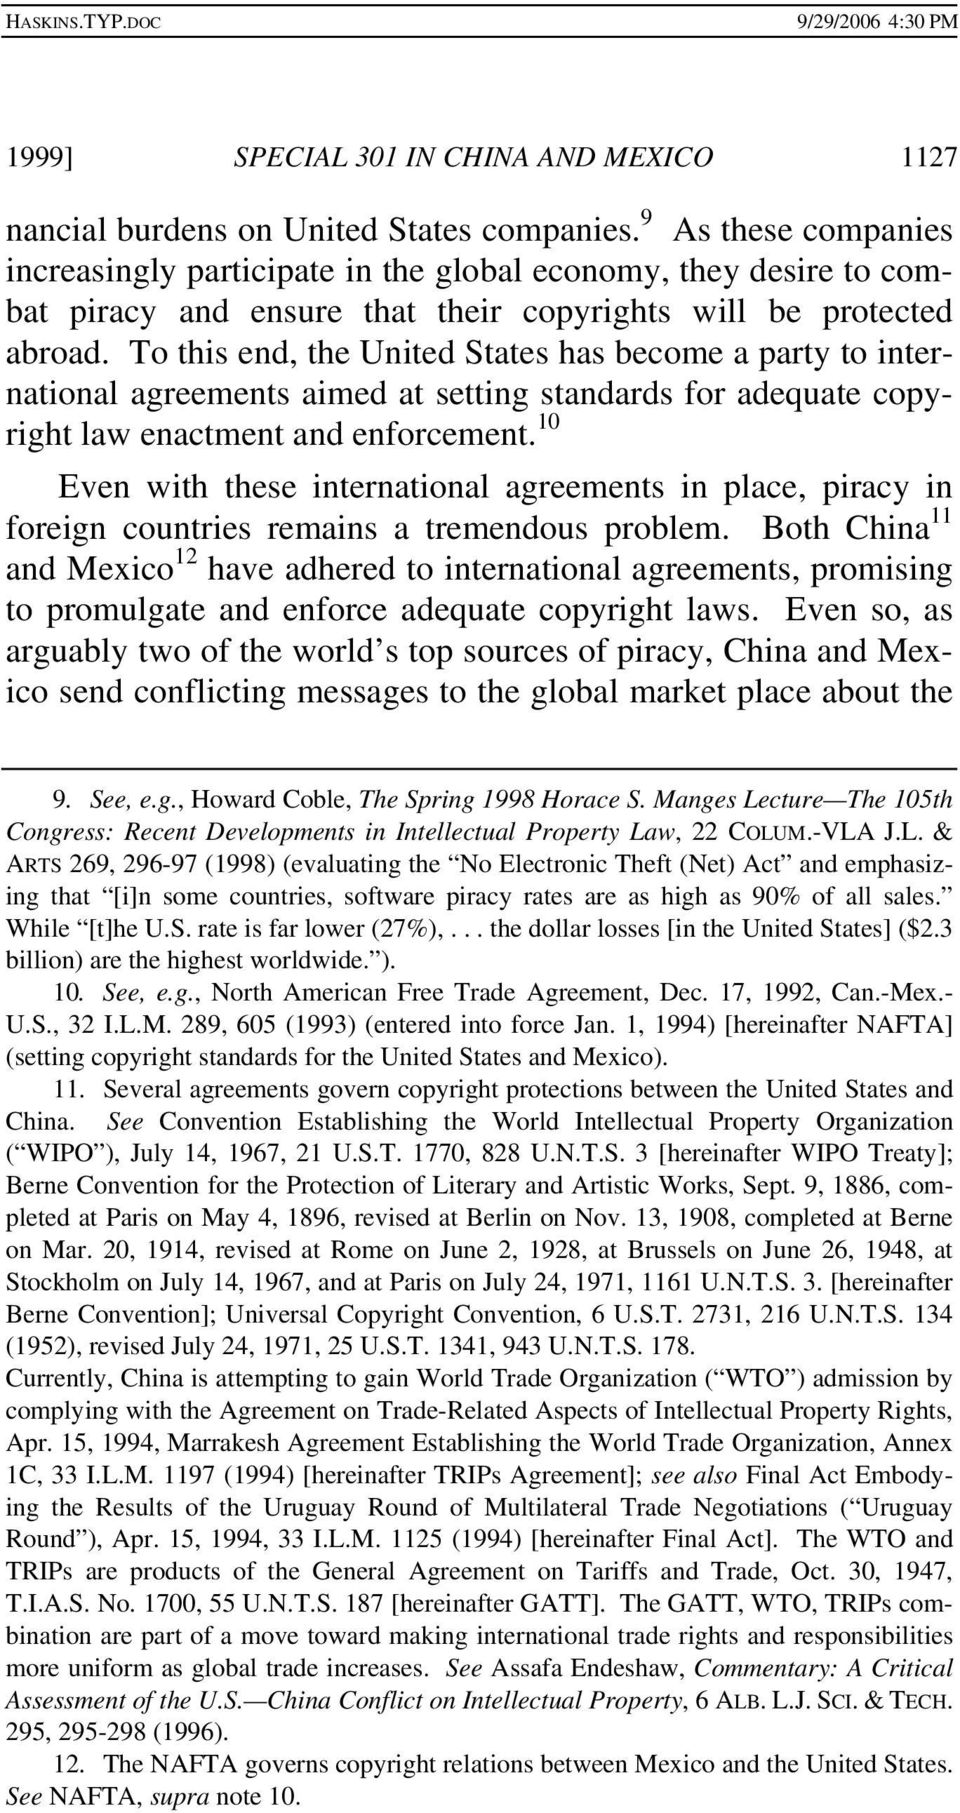 To this end, the United States has become a party to international agreements aimed at setting standards for adequate copyright law enactment and enforcement.